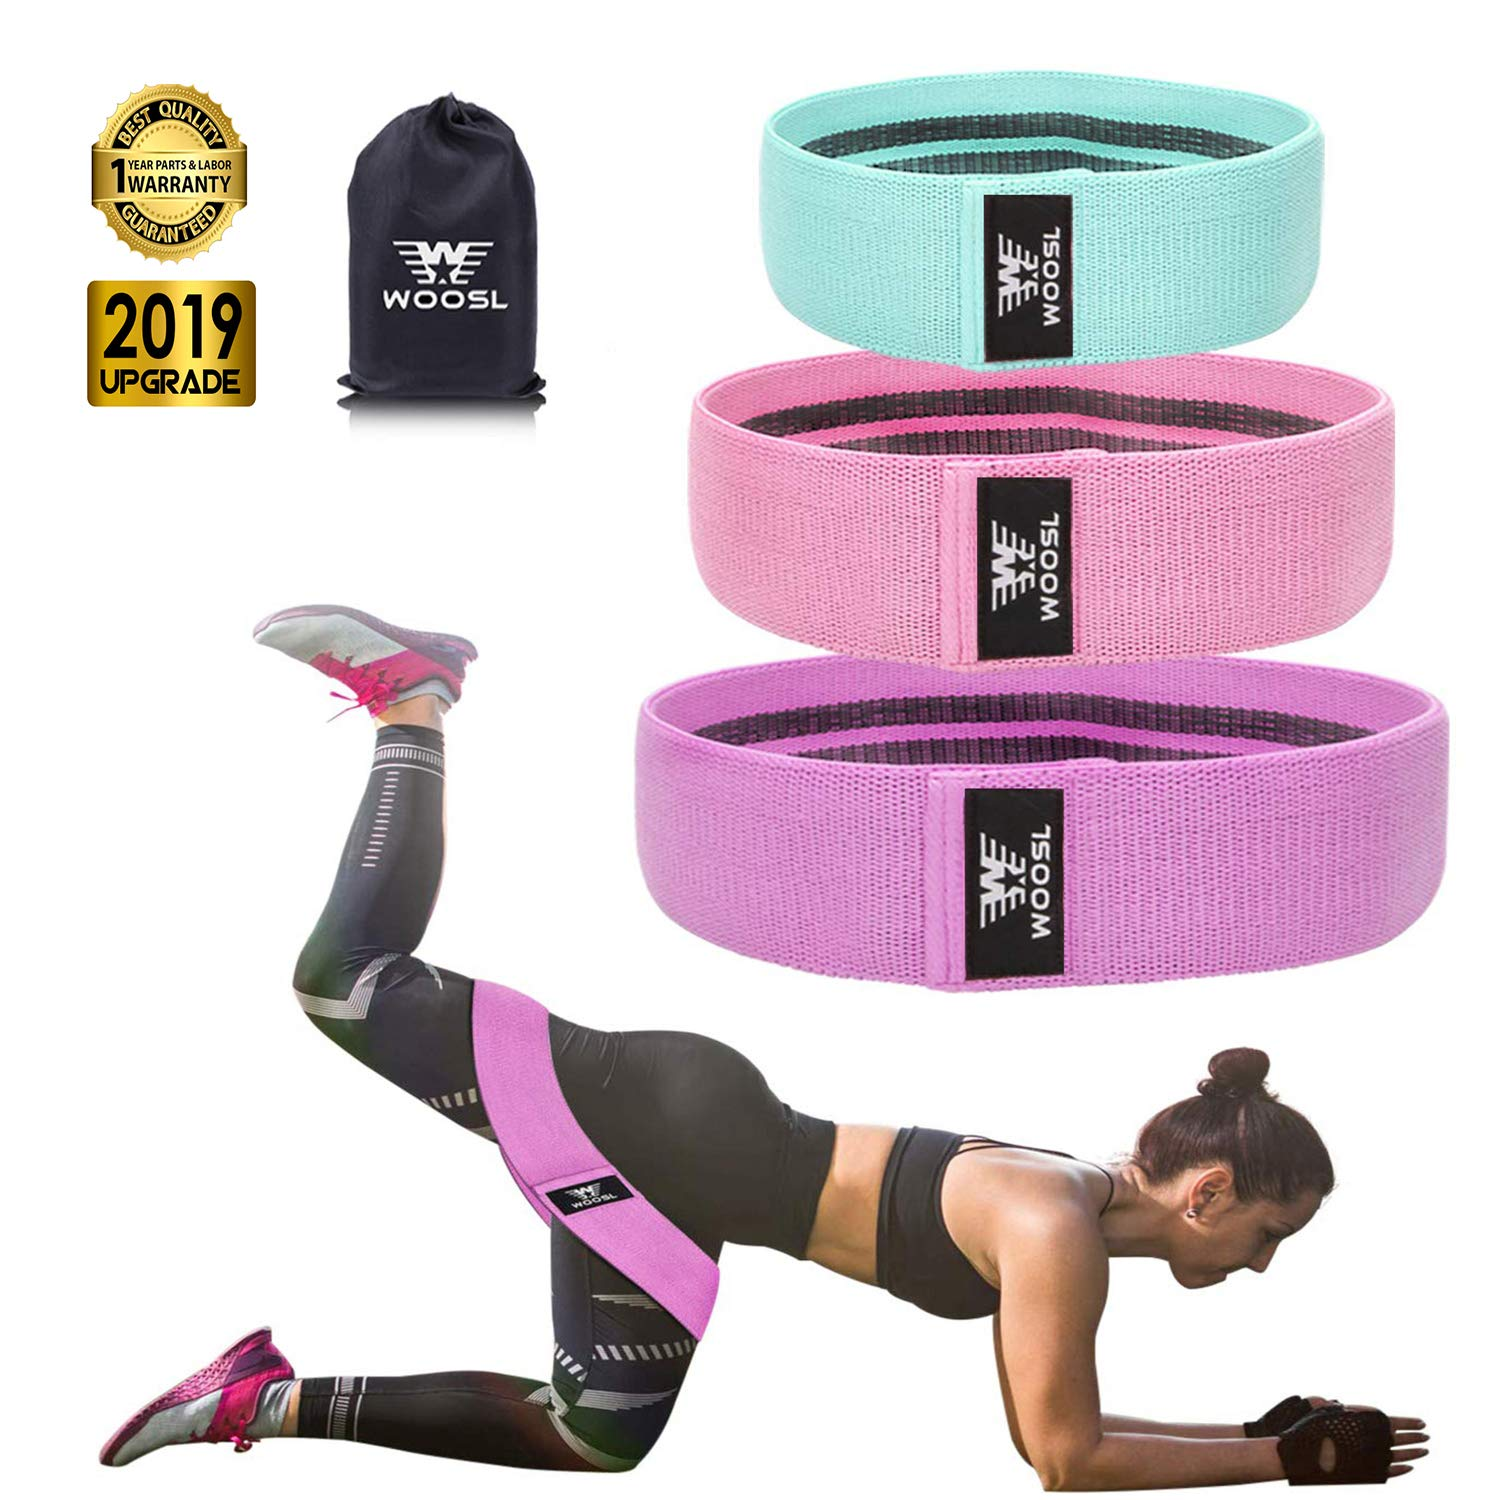 WOOSL Resistance Bands Booty Bands Loop Exercise Bands Workout Bands Hip Bands Booty Band with Fabric Anti-Slipping Glute Wide Resistance Bands for Legs and Butt Cotton Fitness Loop, Purple